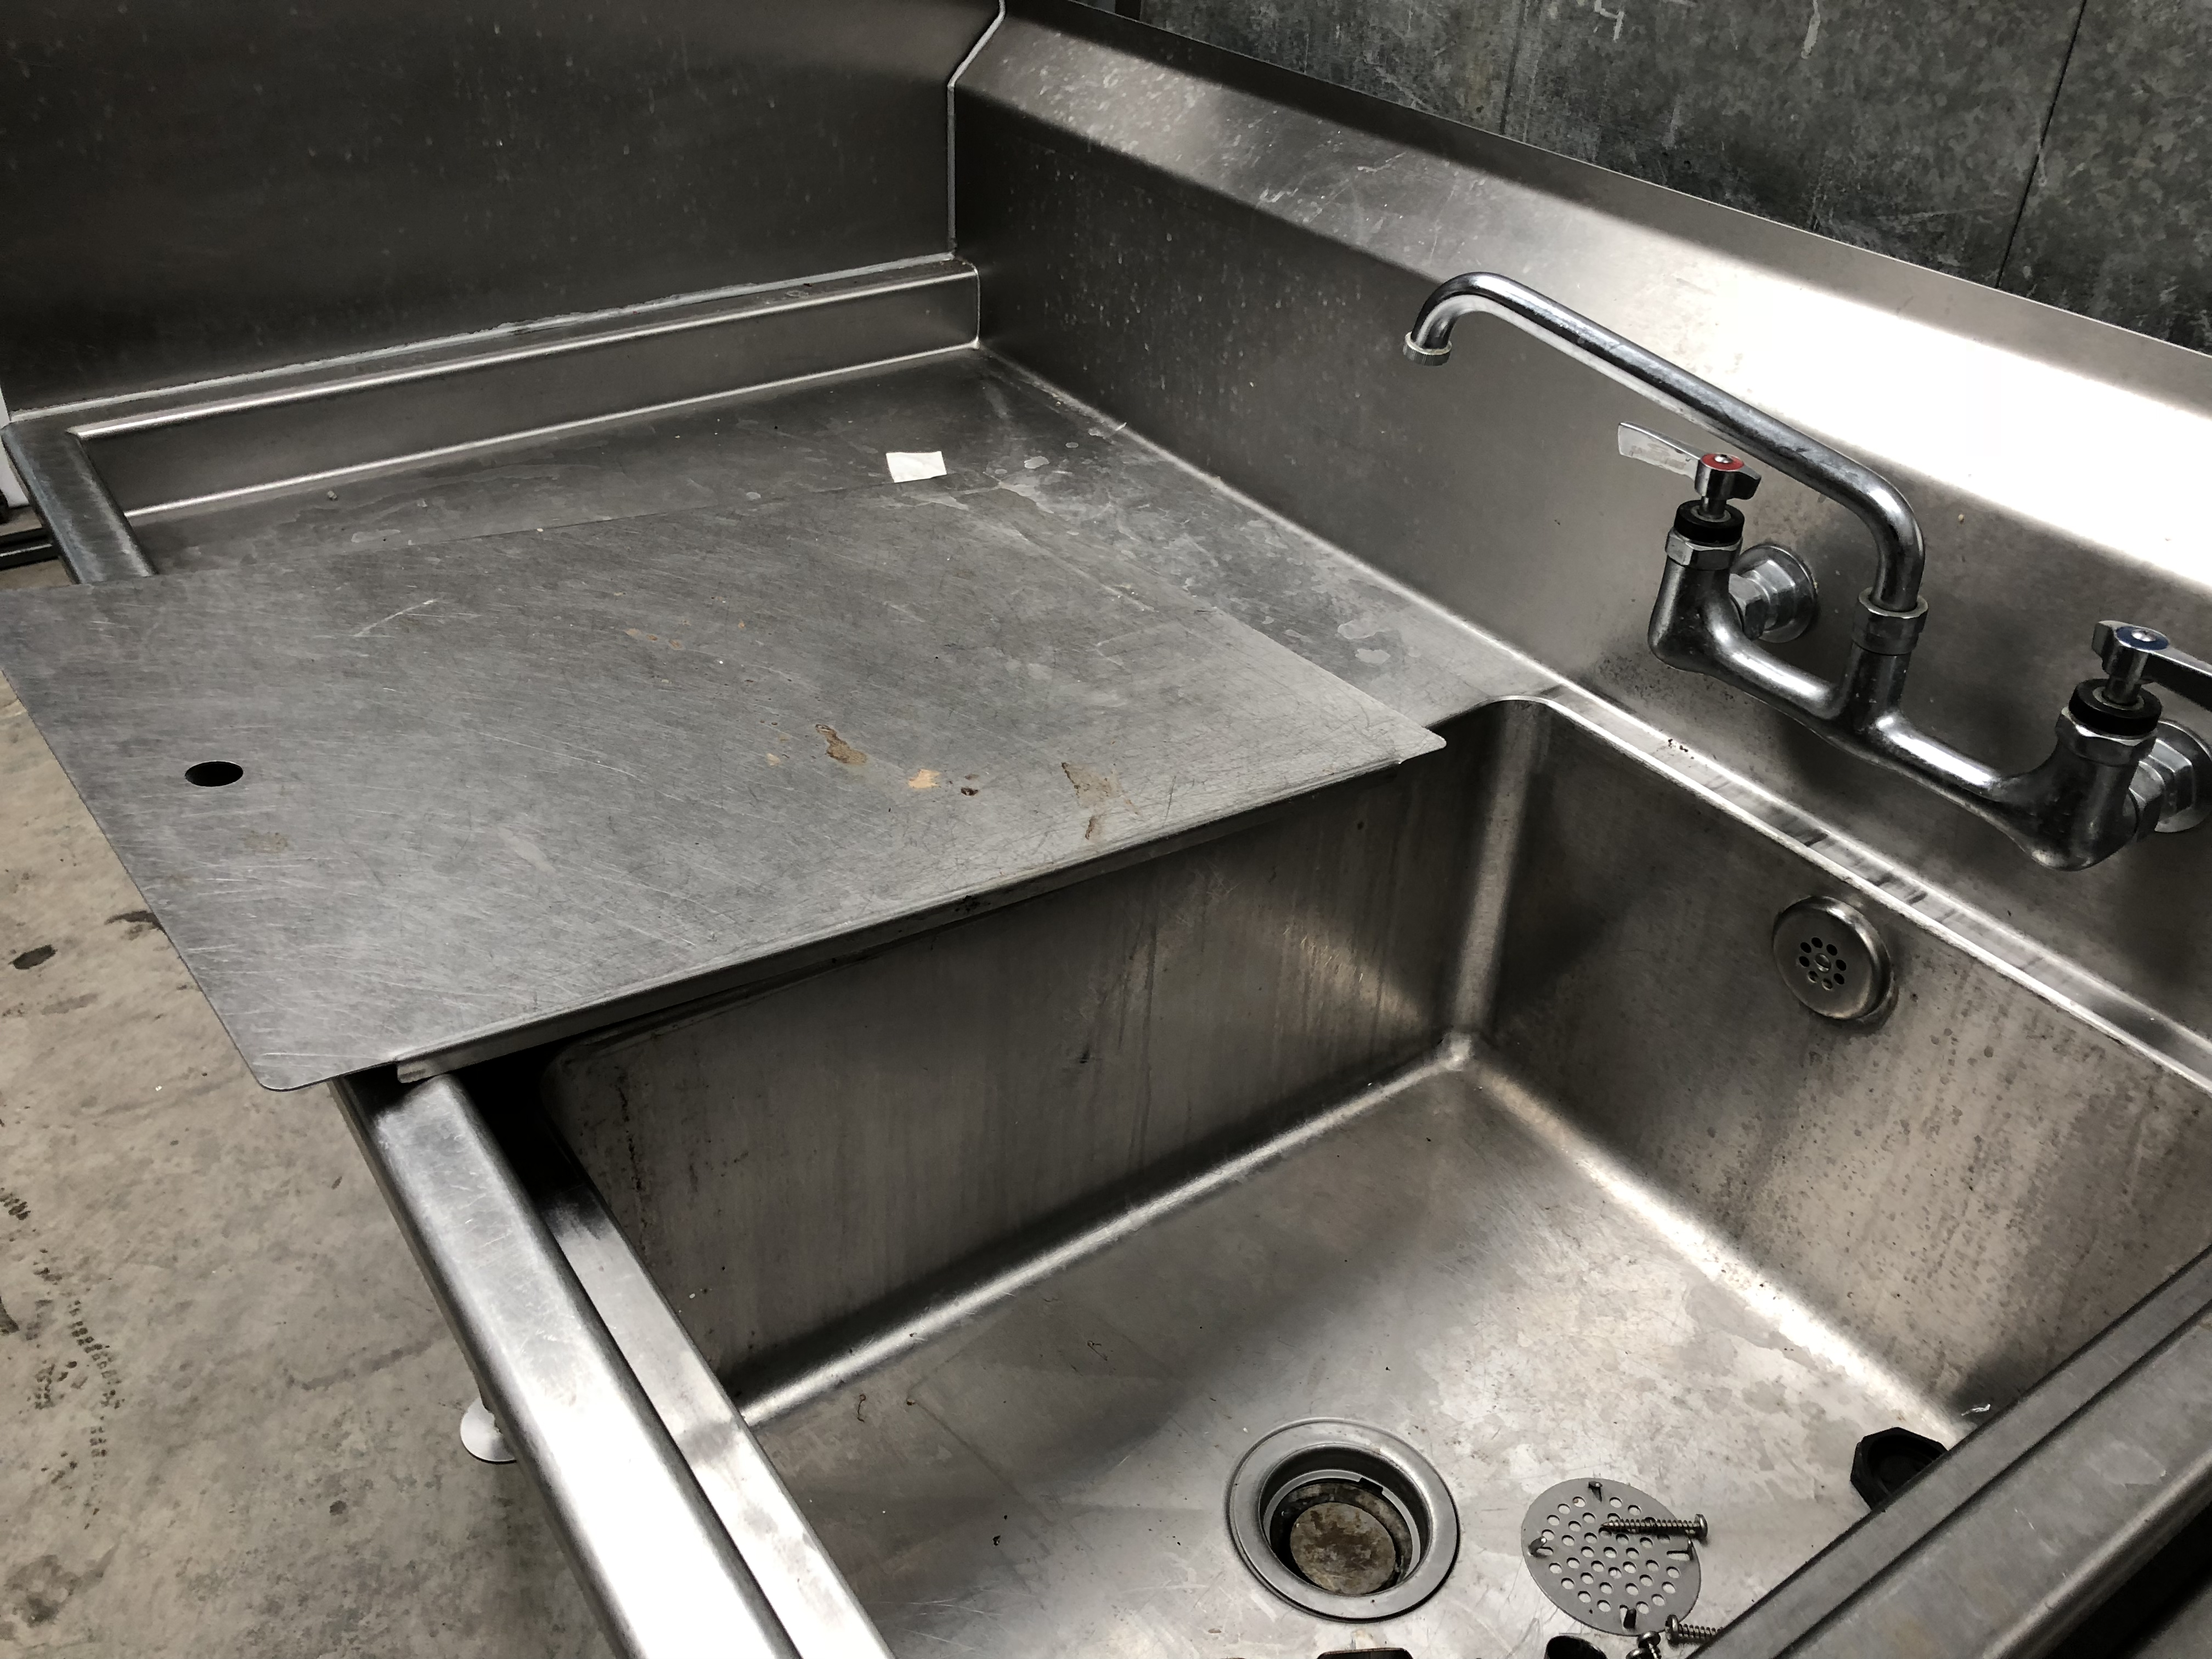 Lot 29 - Stainless Steel Sink Unit with Drainer and Mixer Taps